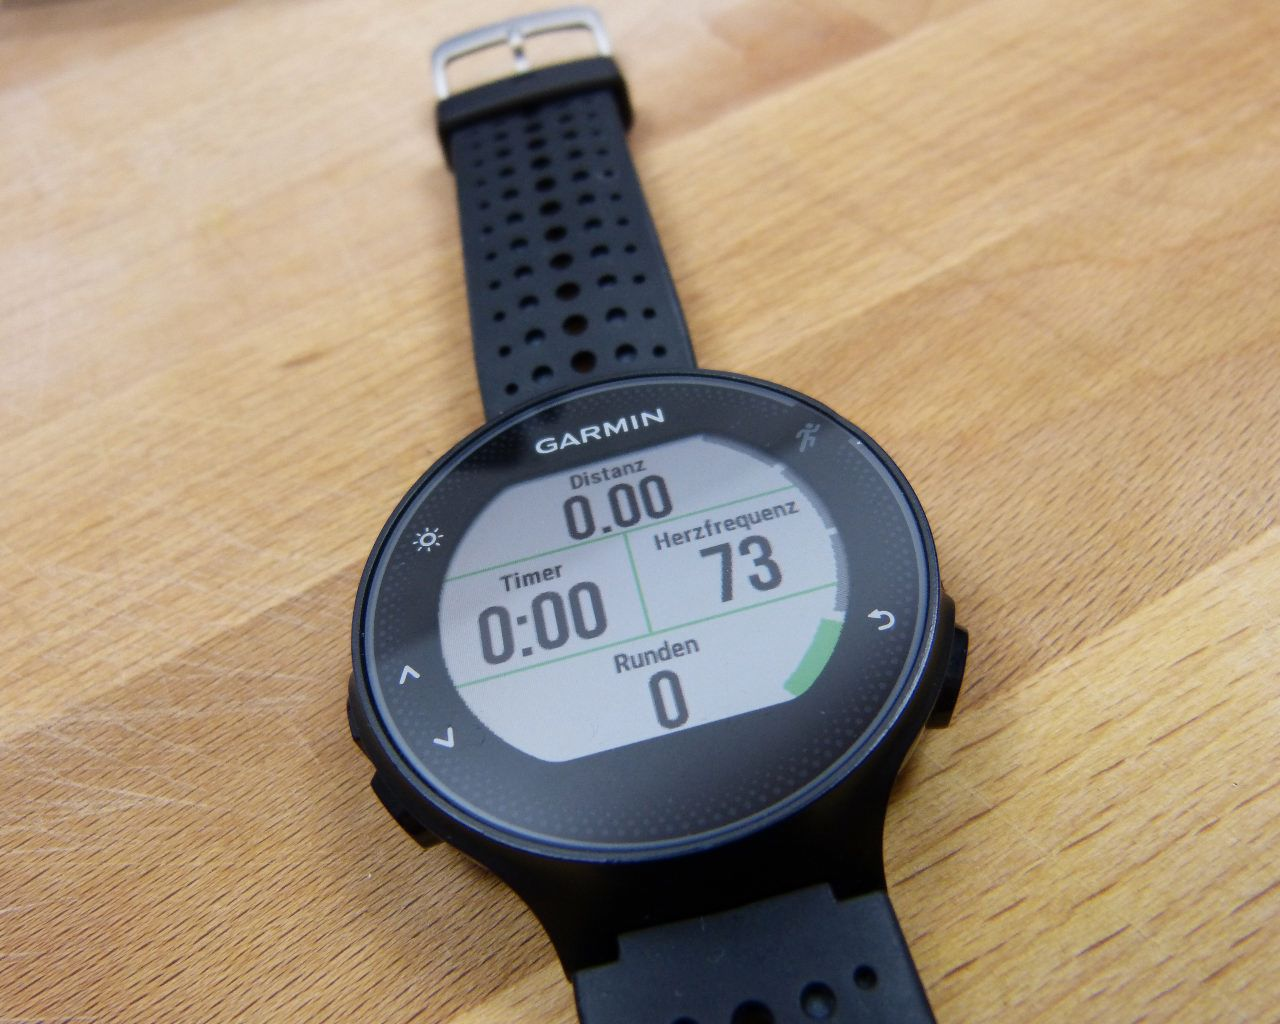 garmin forerunner 235 im test testbericht019 fitness. Black Bedroom Furniture Sets. Home Design Ideas